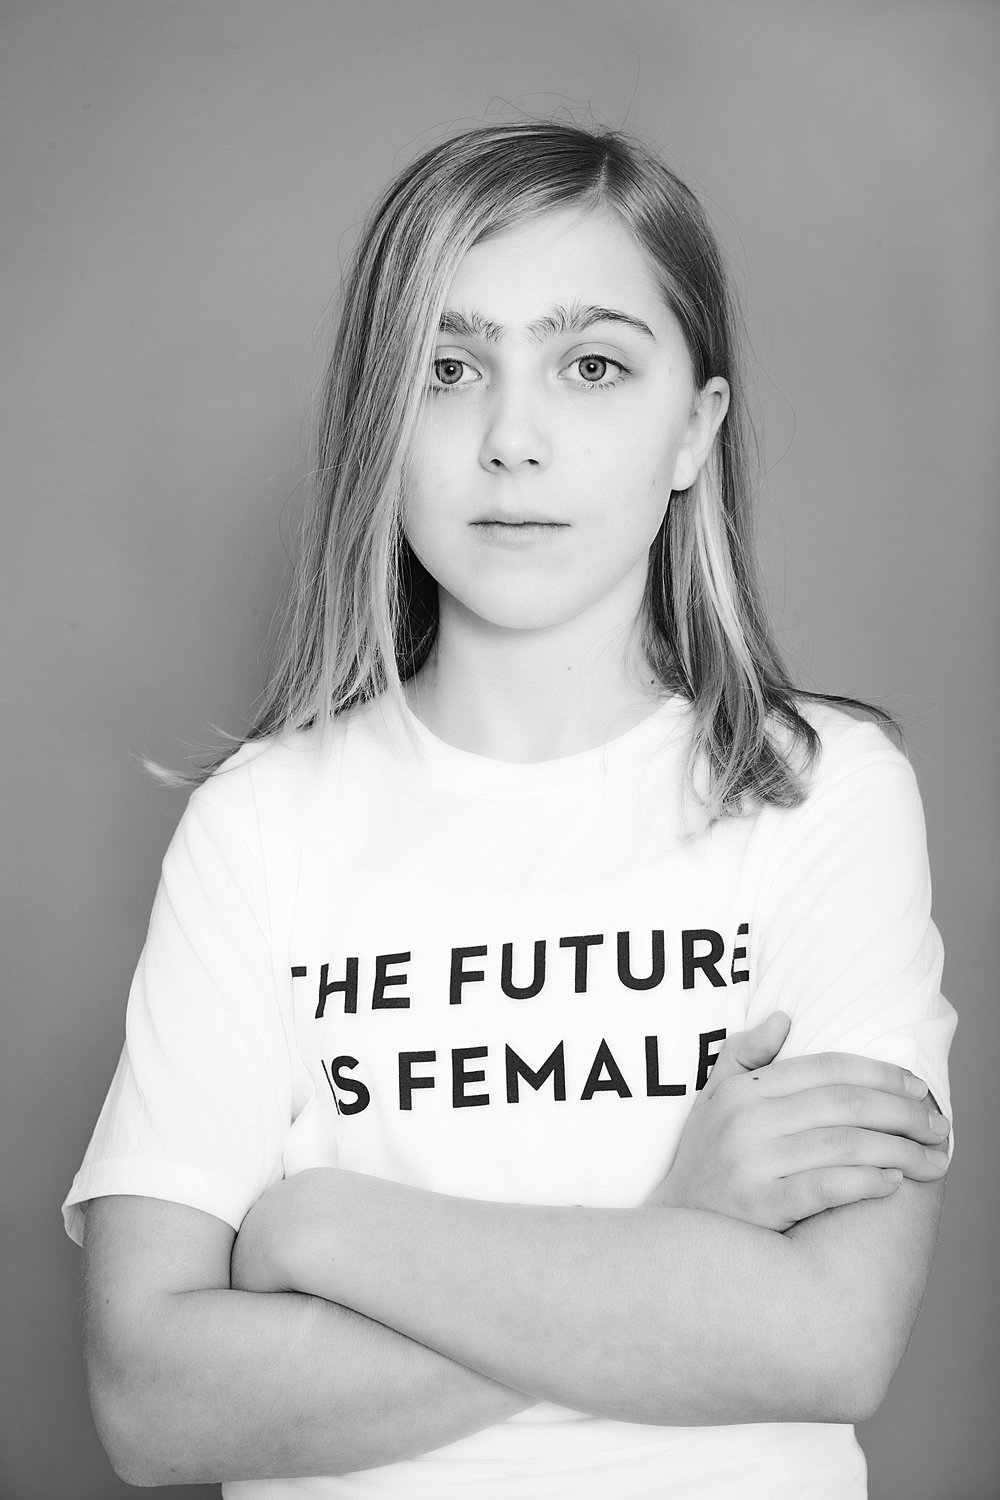 2017_the_future_is_female_001_bw_r.jpg